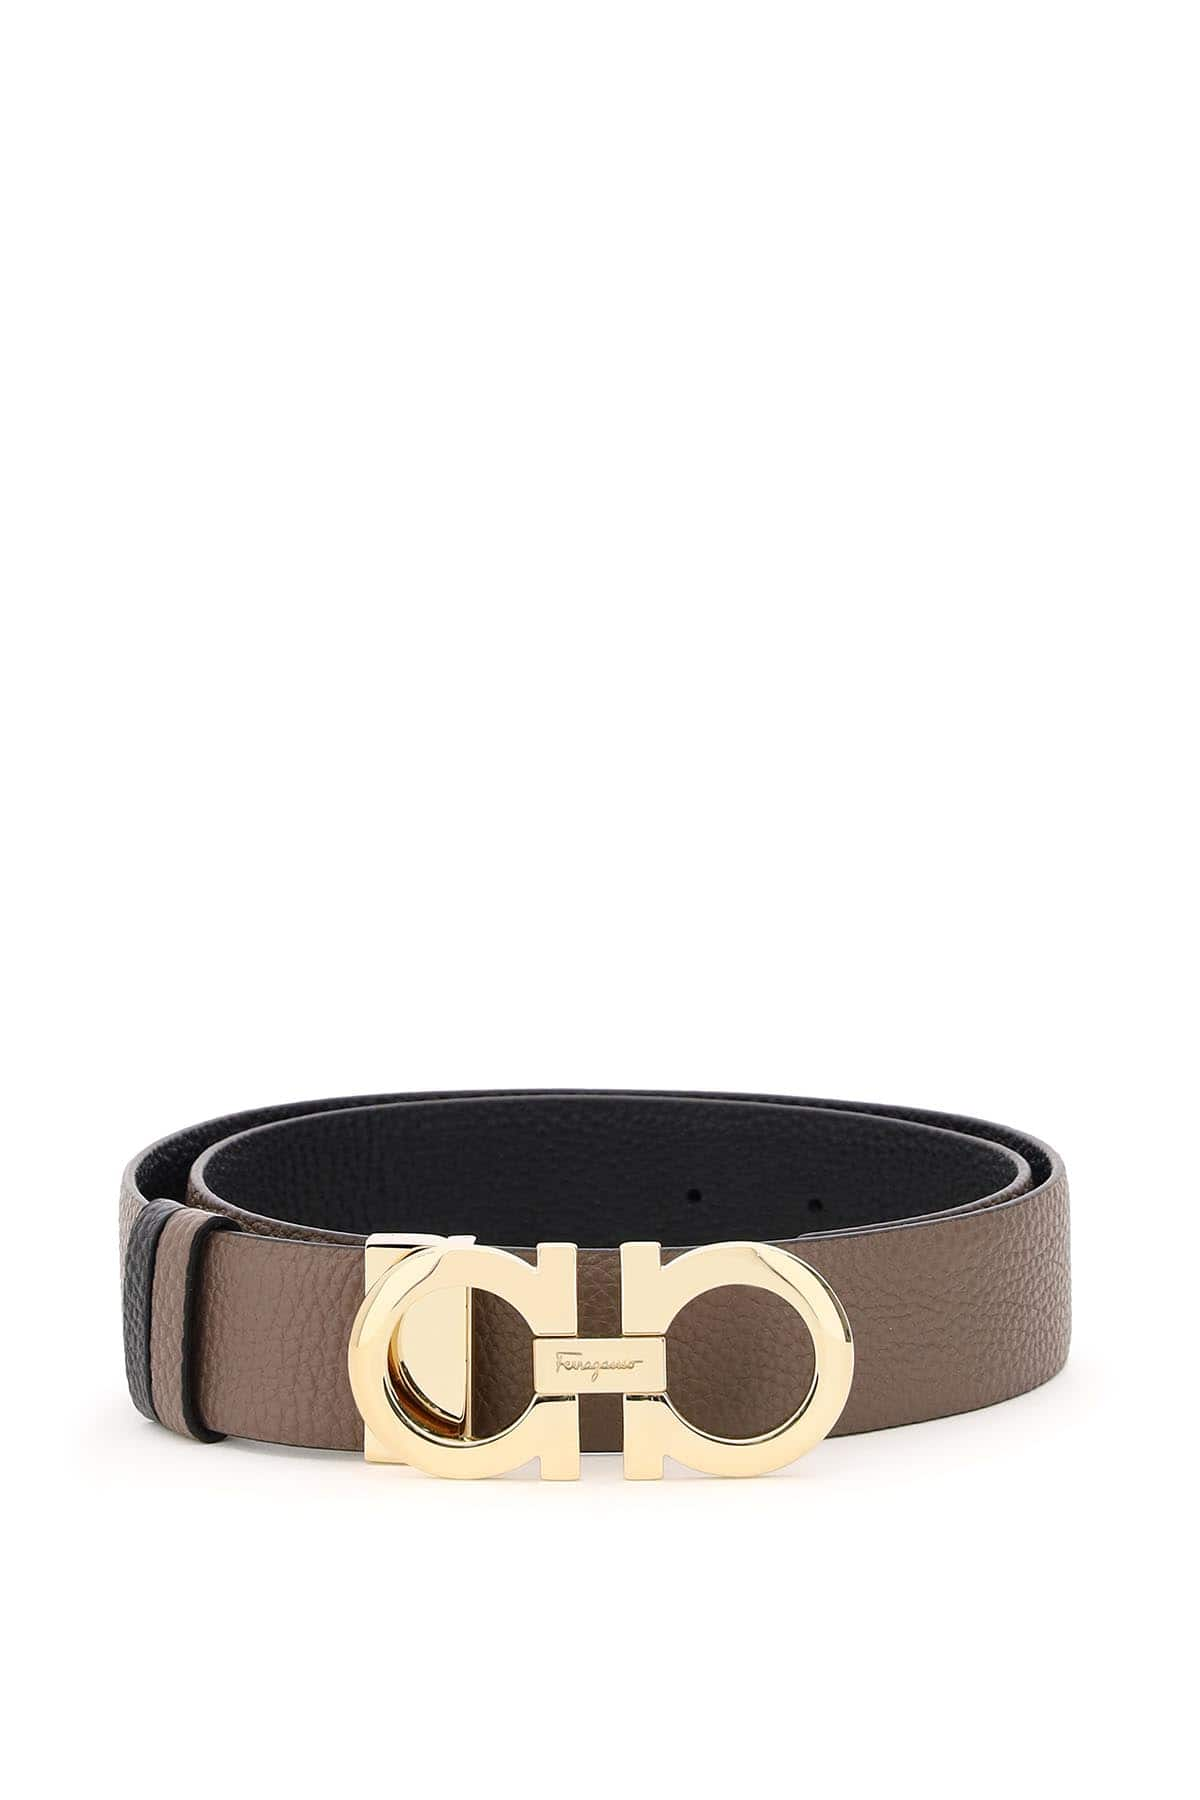 SALVATORE FERRAGAMO REVERSIBLE GANCINI BELT 95 Brown, Grey, Black Leather